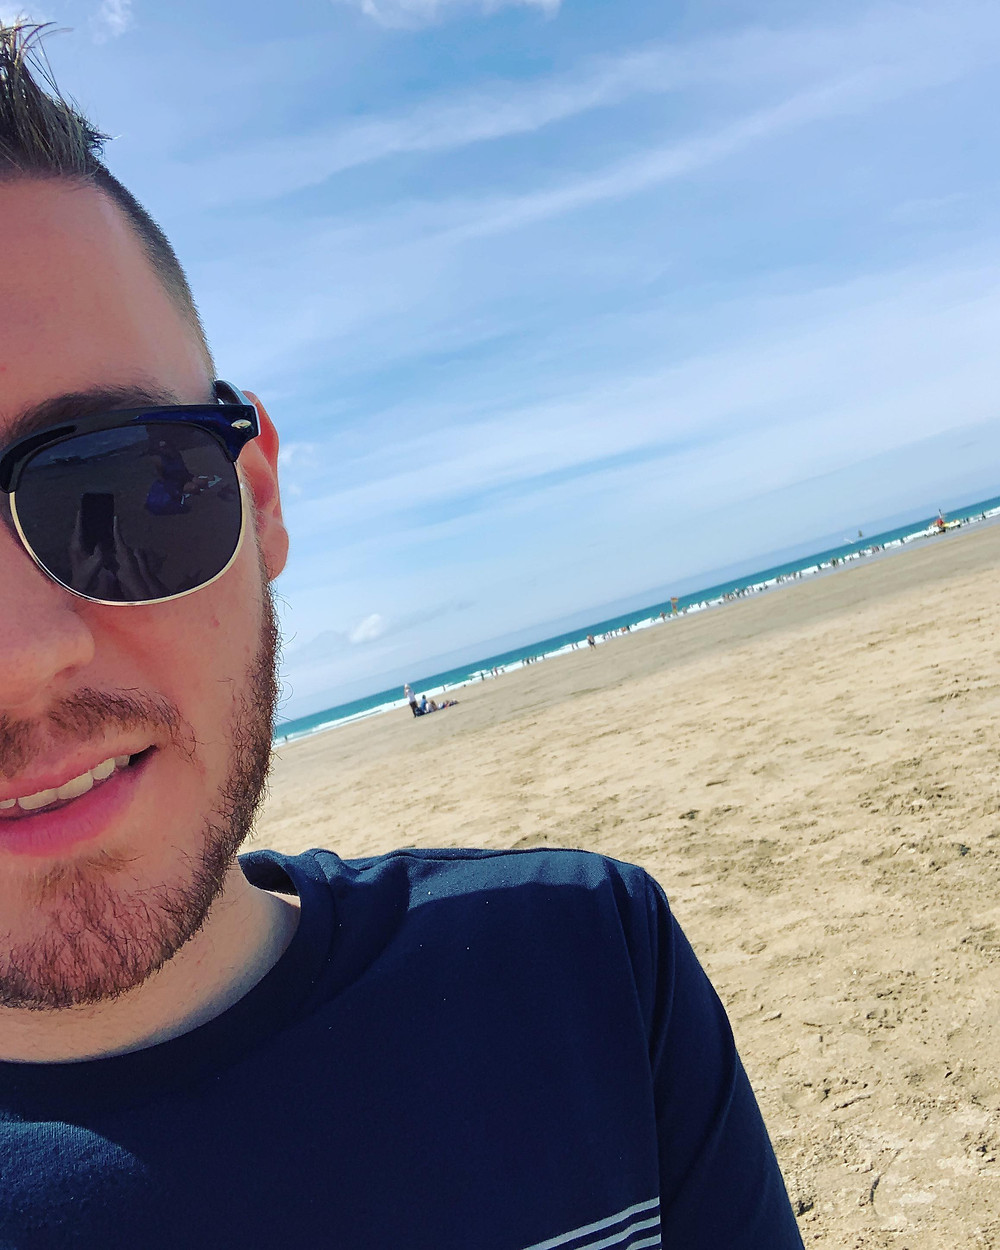 A half-face selfie of Ross on the beach with sea views in the background